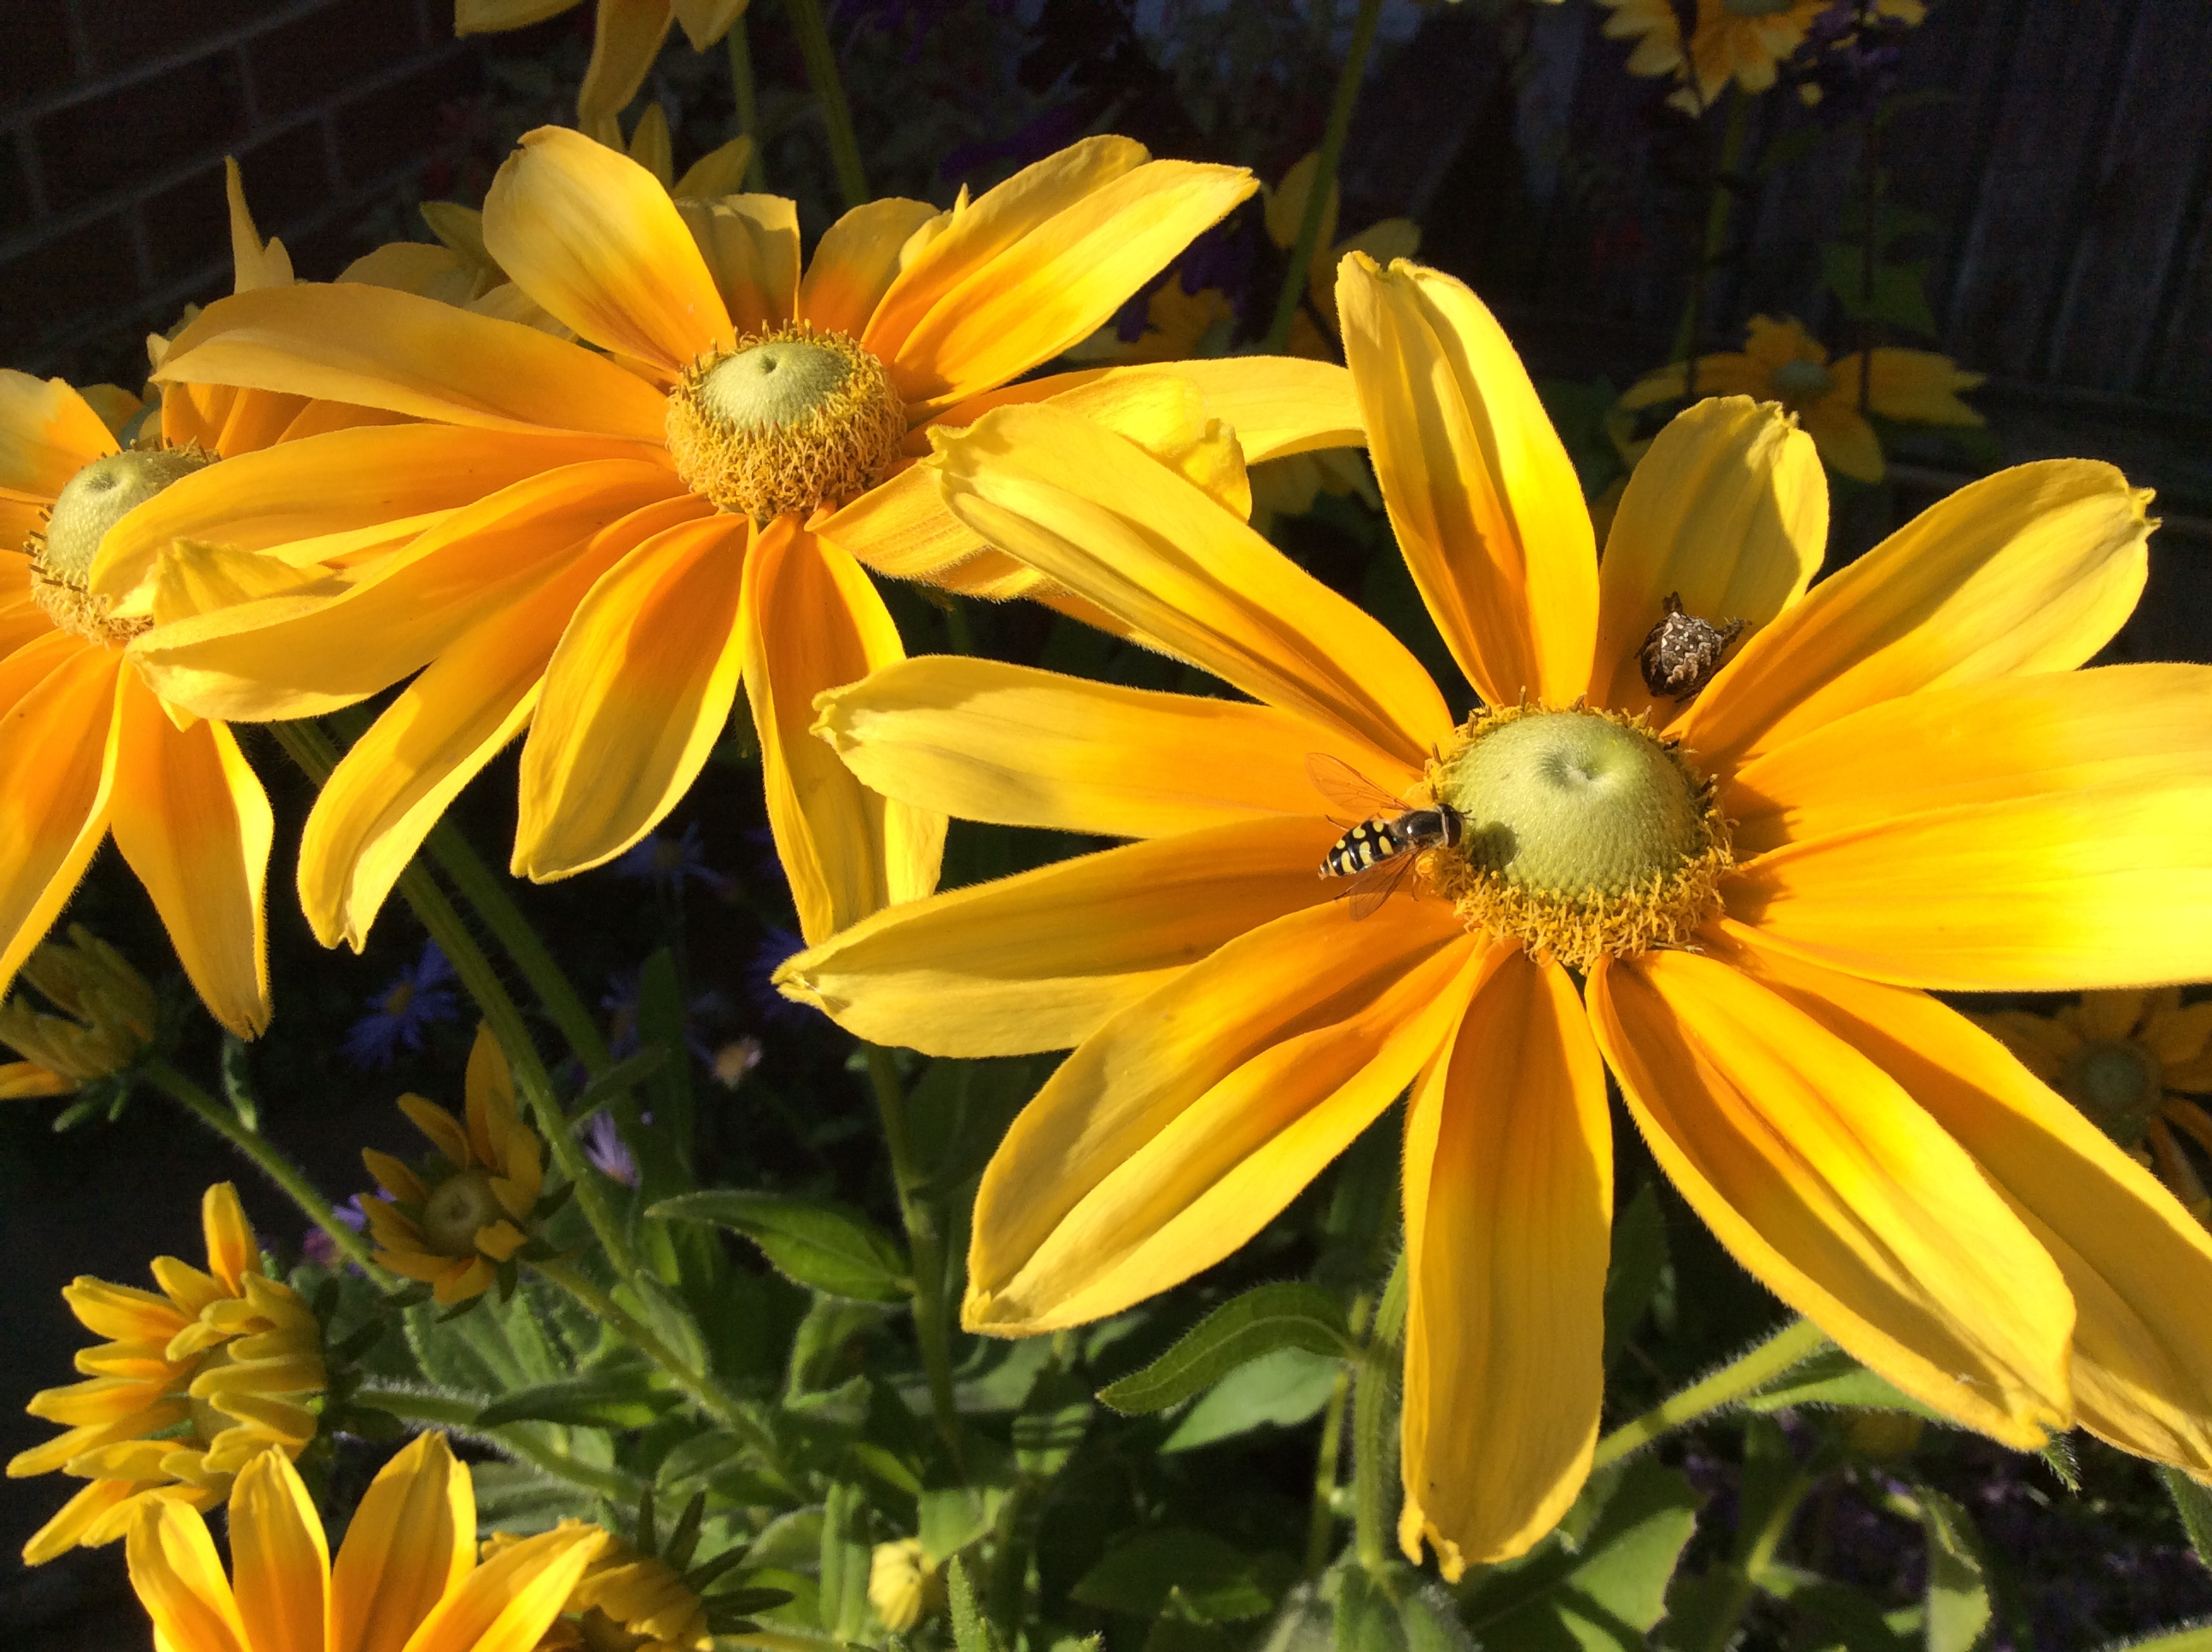 Insect on golden yellow sunflower